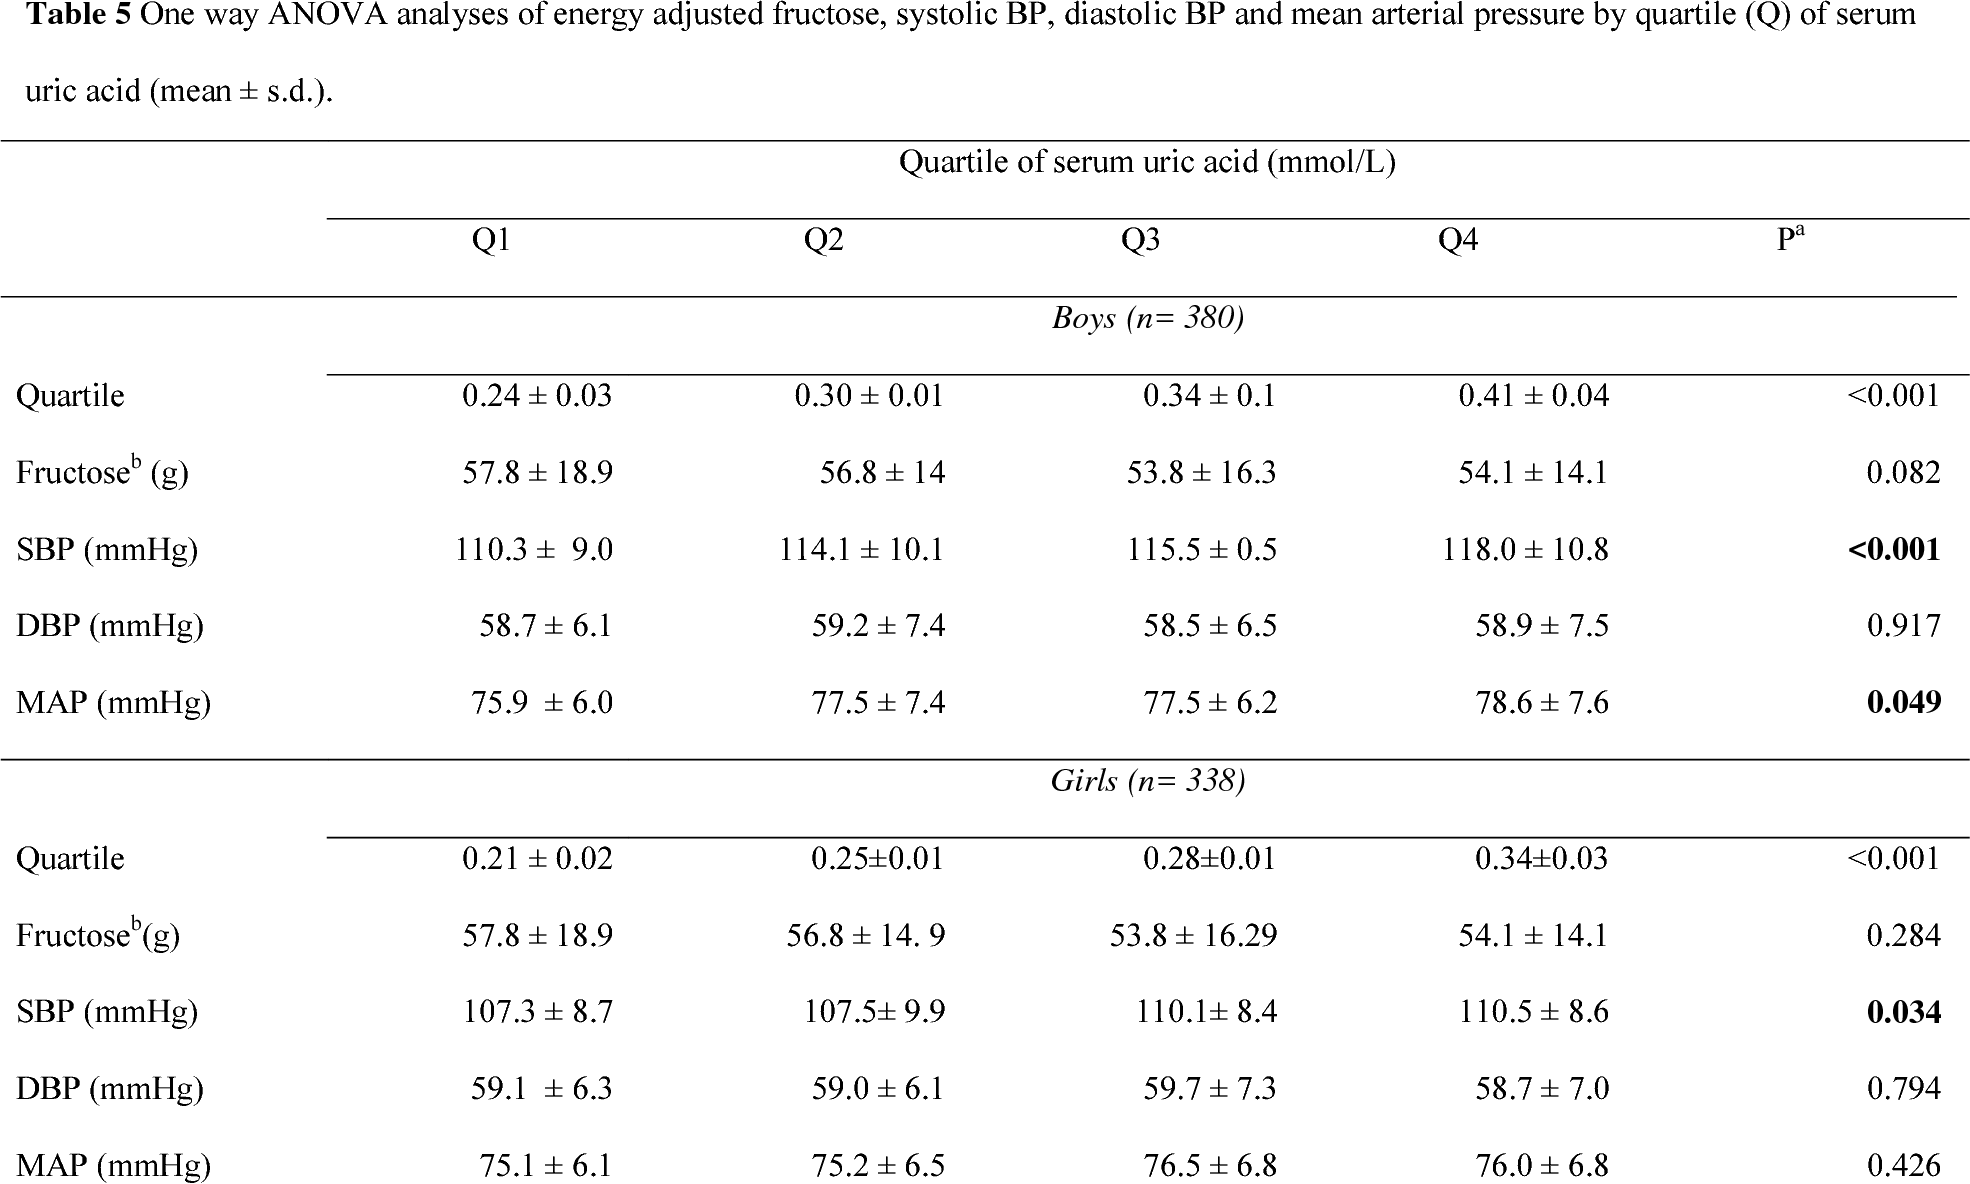 High Fructose Diet In Adolescence May >> Table 5 From Dietary Fructose In Relation To Blood Pressure And